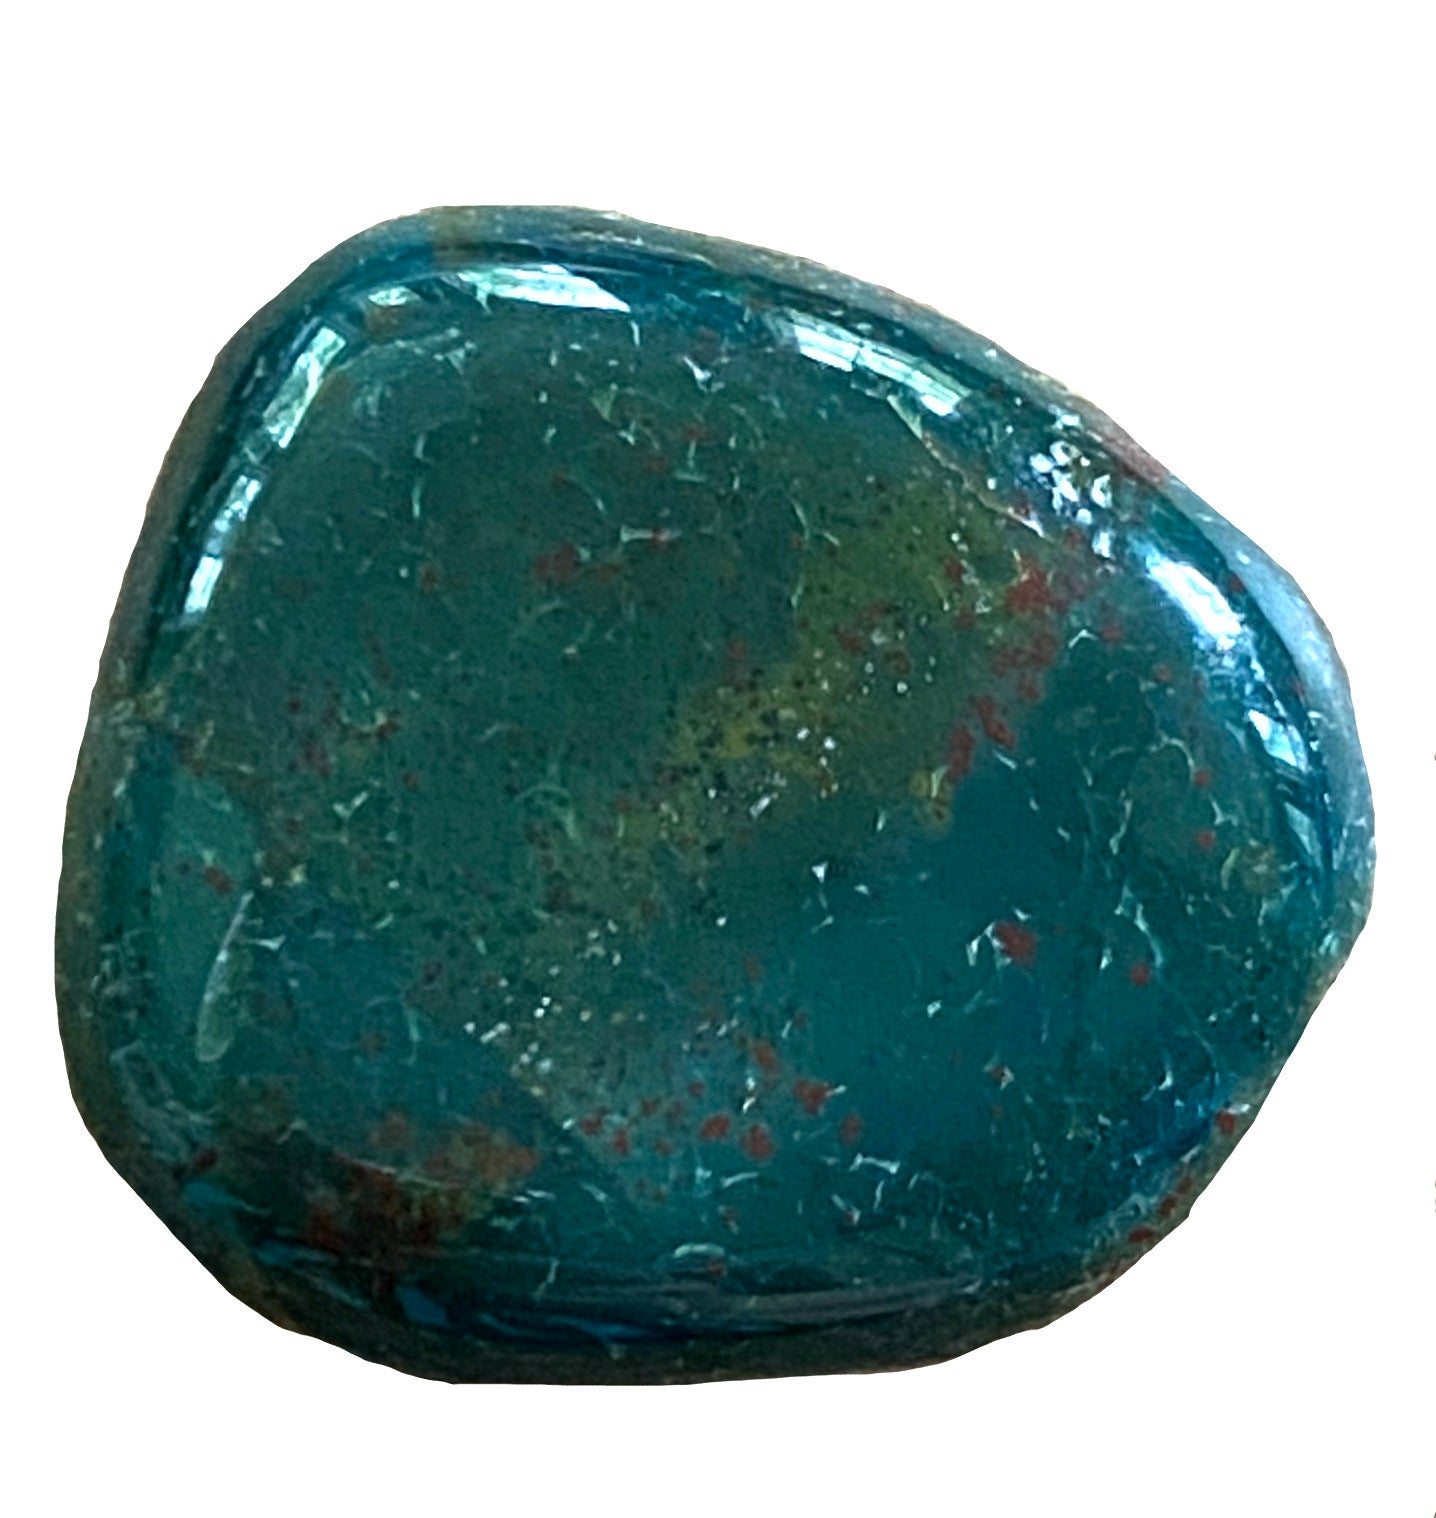 Bloodstone Crystal/ Heliotrope x1 - Wonderful for abundance, purification, intuition, and alignment - Chakra Palace